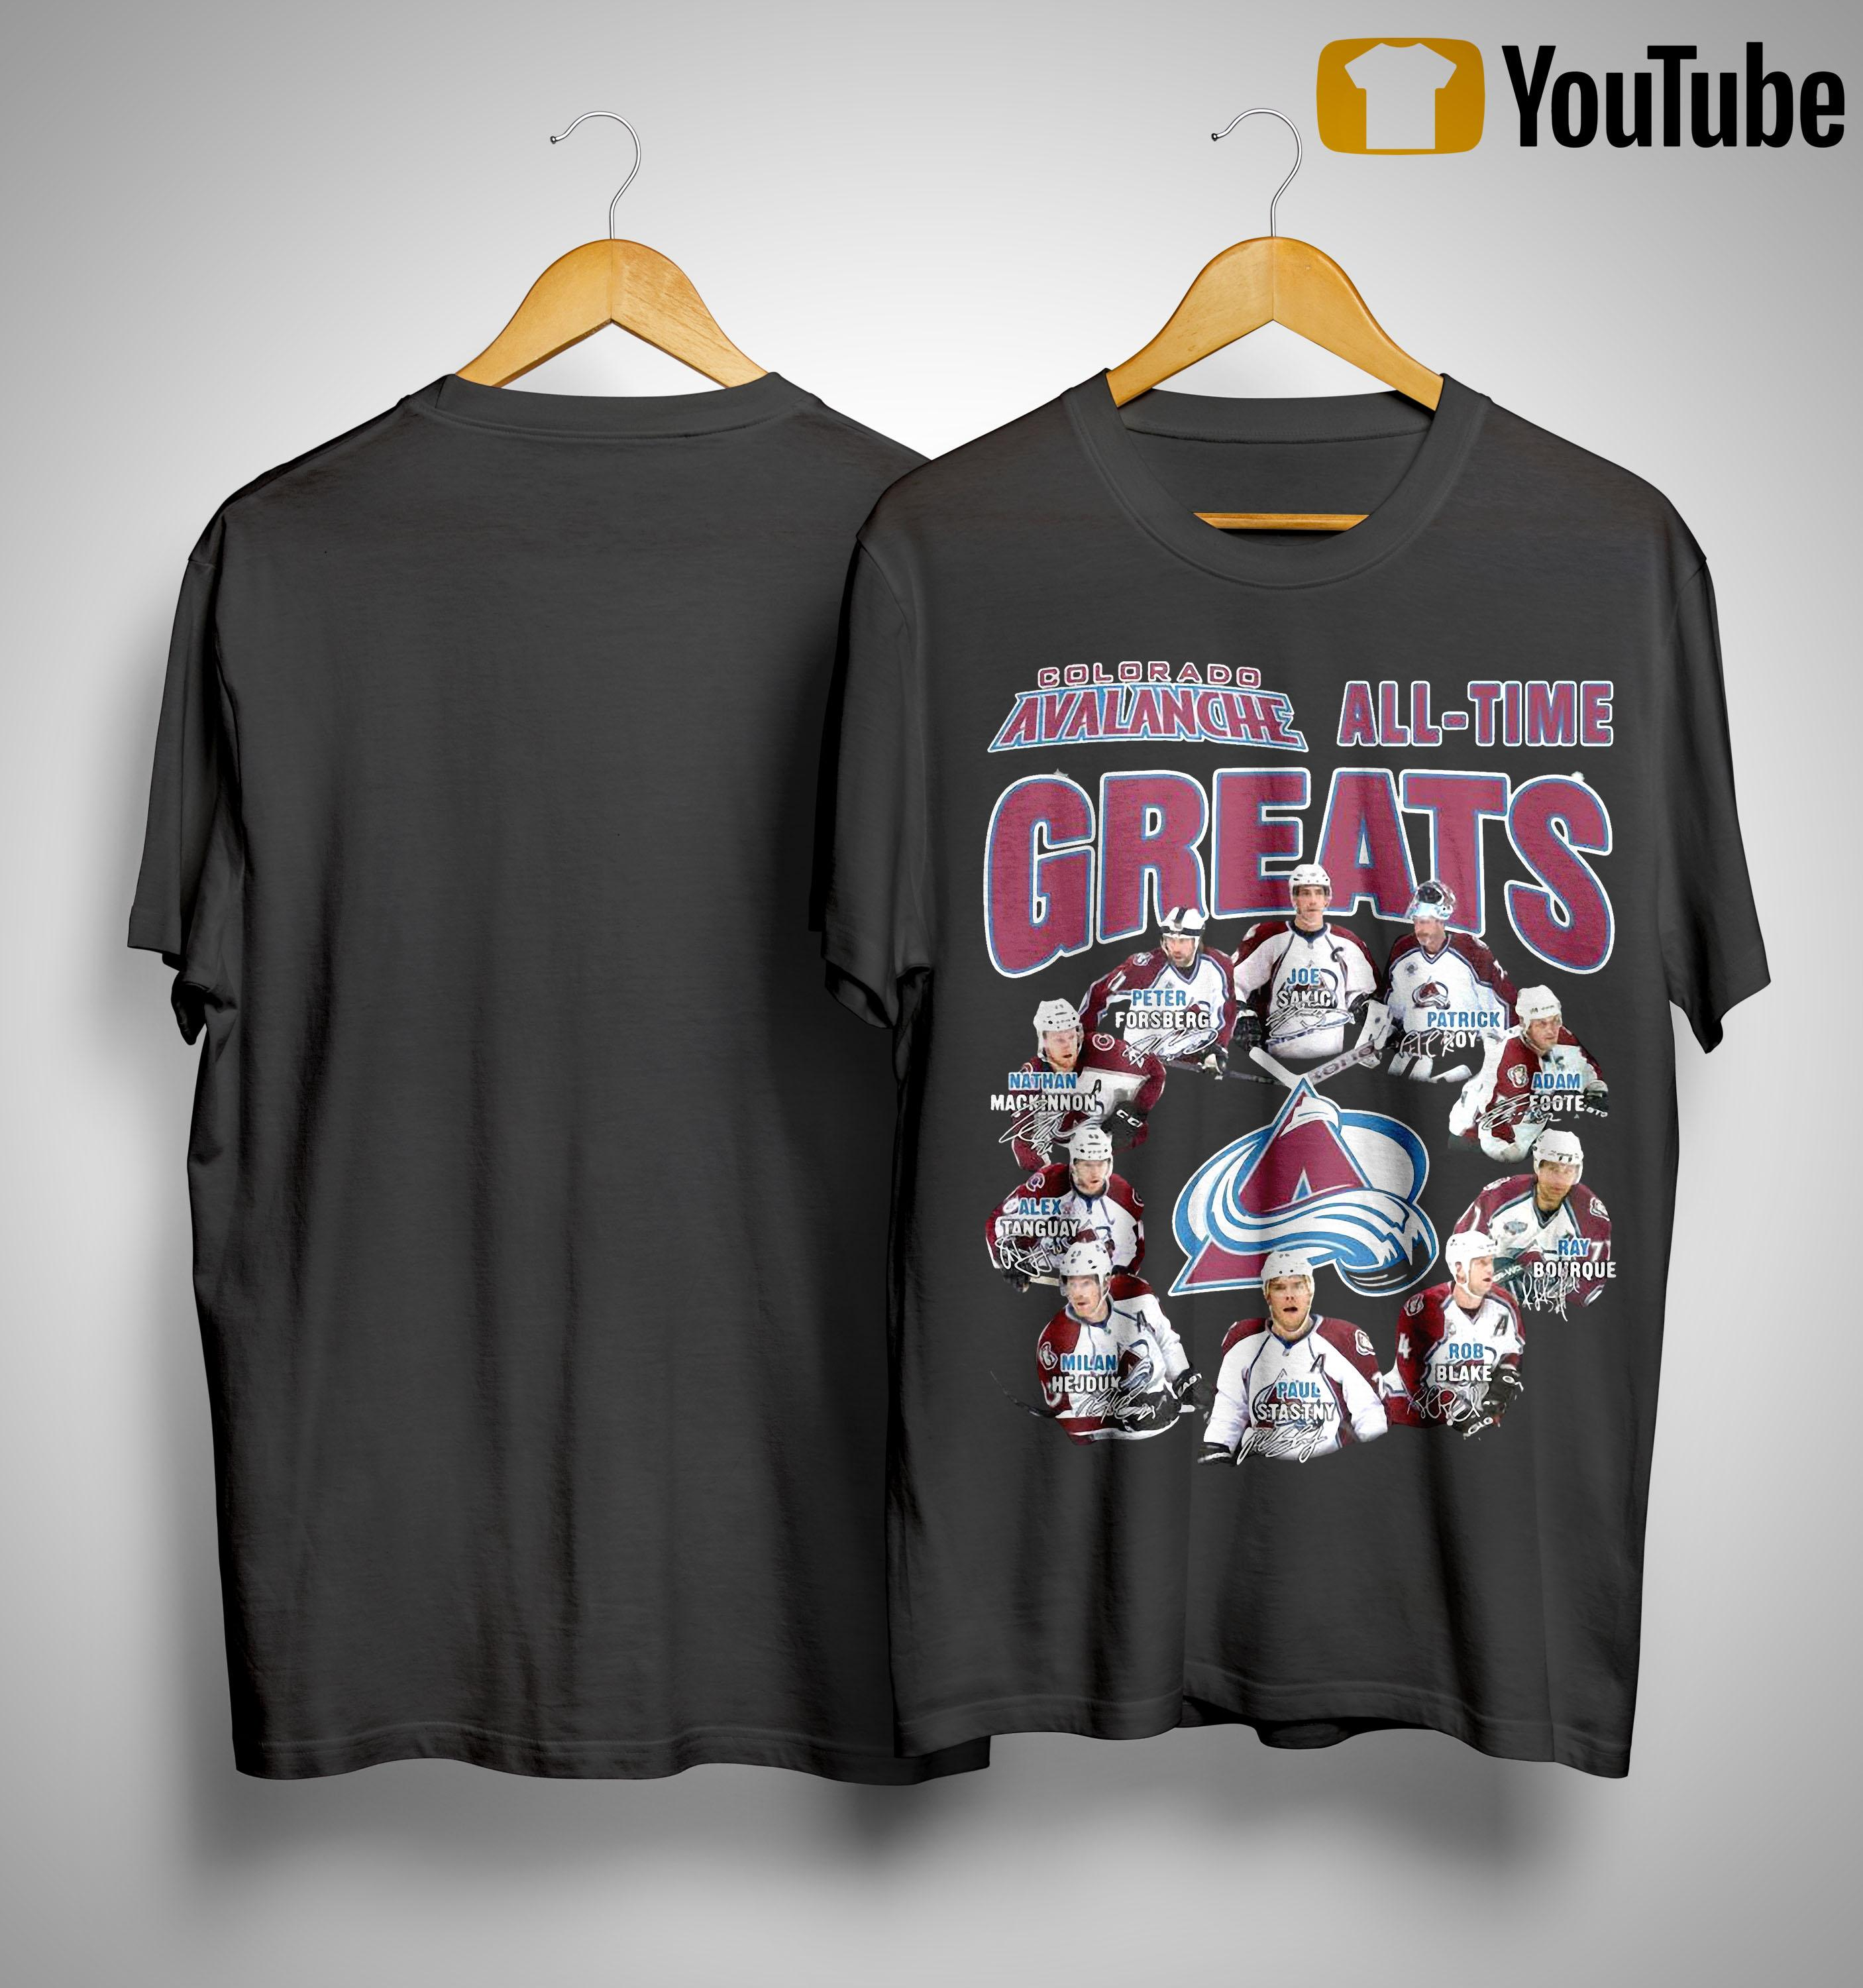 Colorado Avalanche All Time Greats Shirt